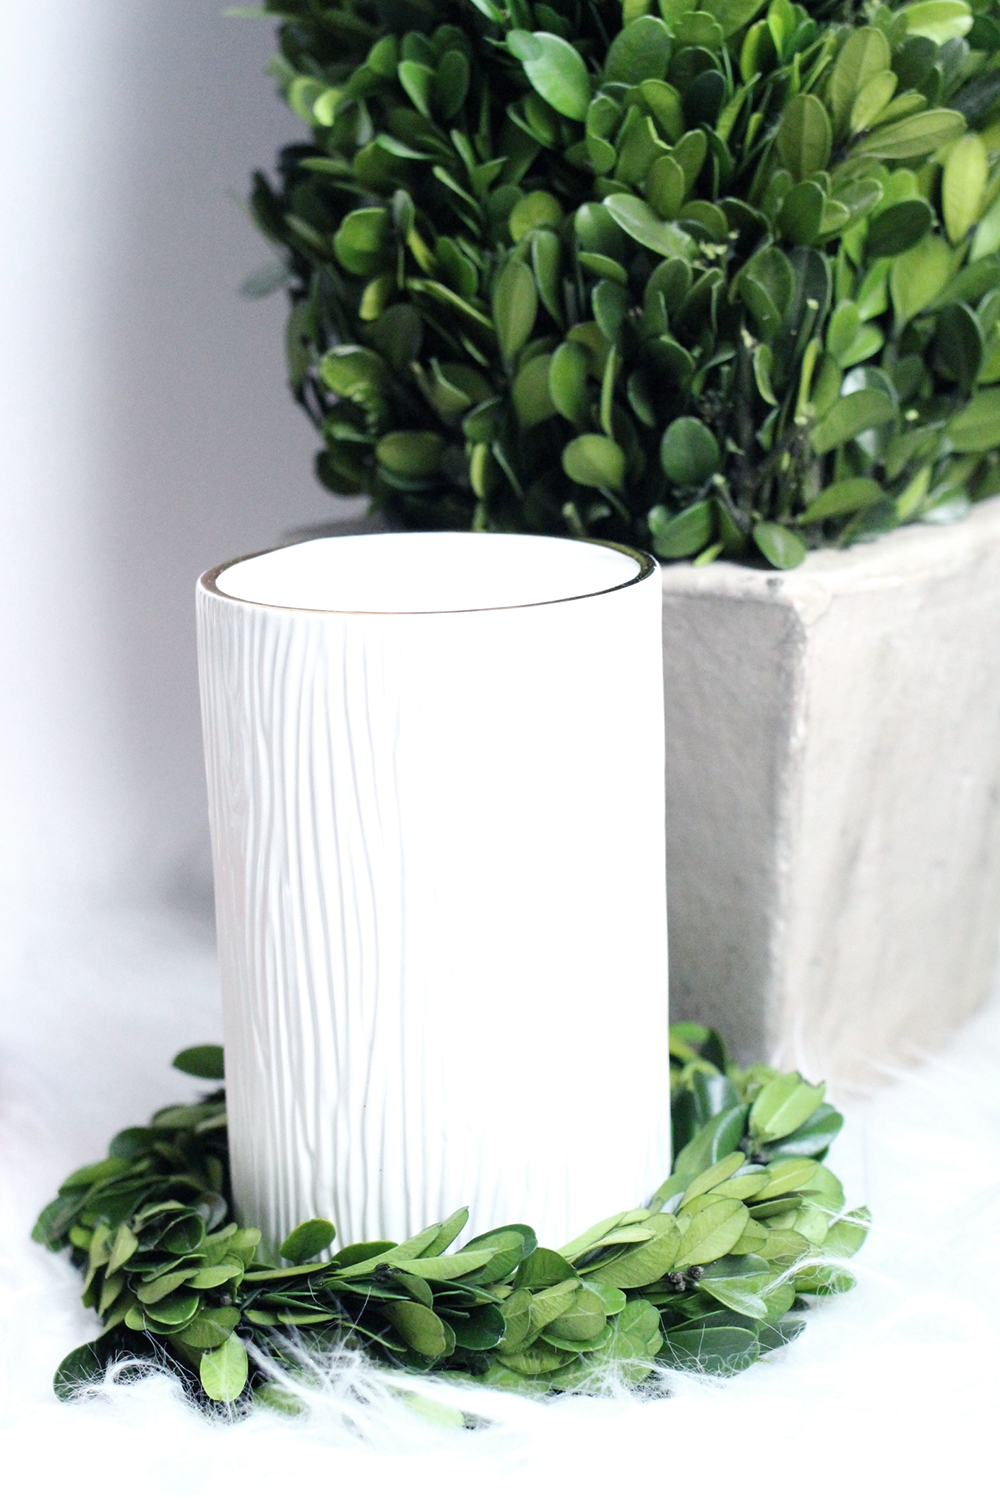 Fraiser Fir Fall Candle, White and Green Holiday Decor